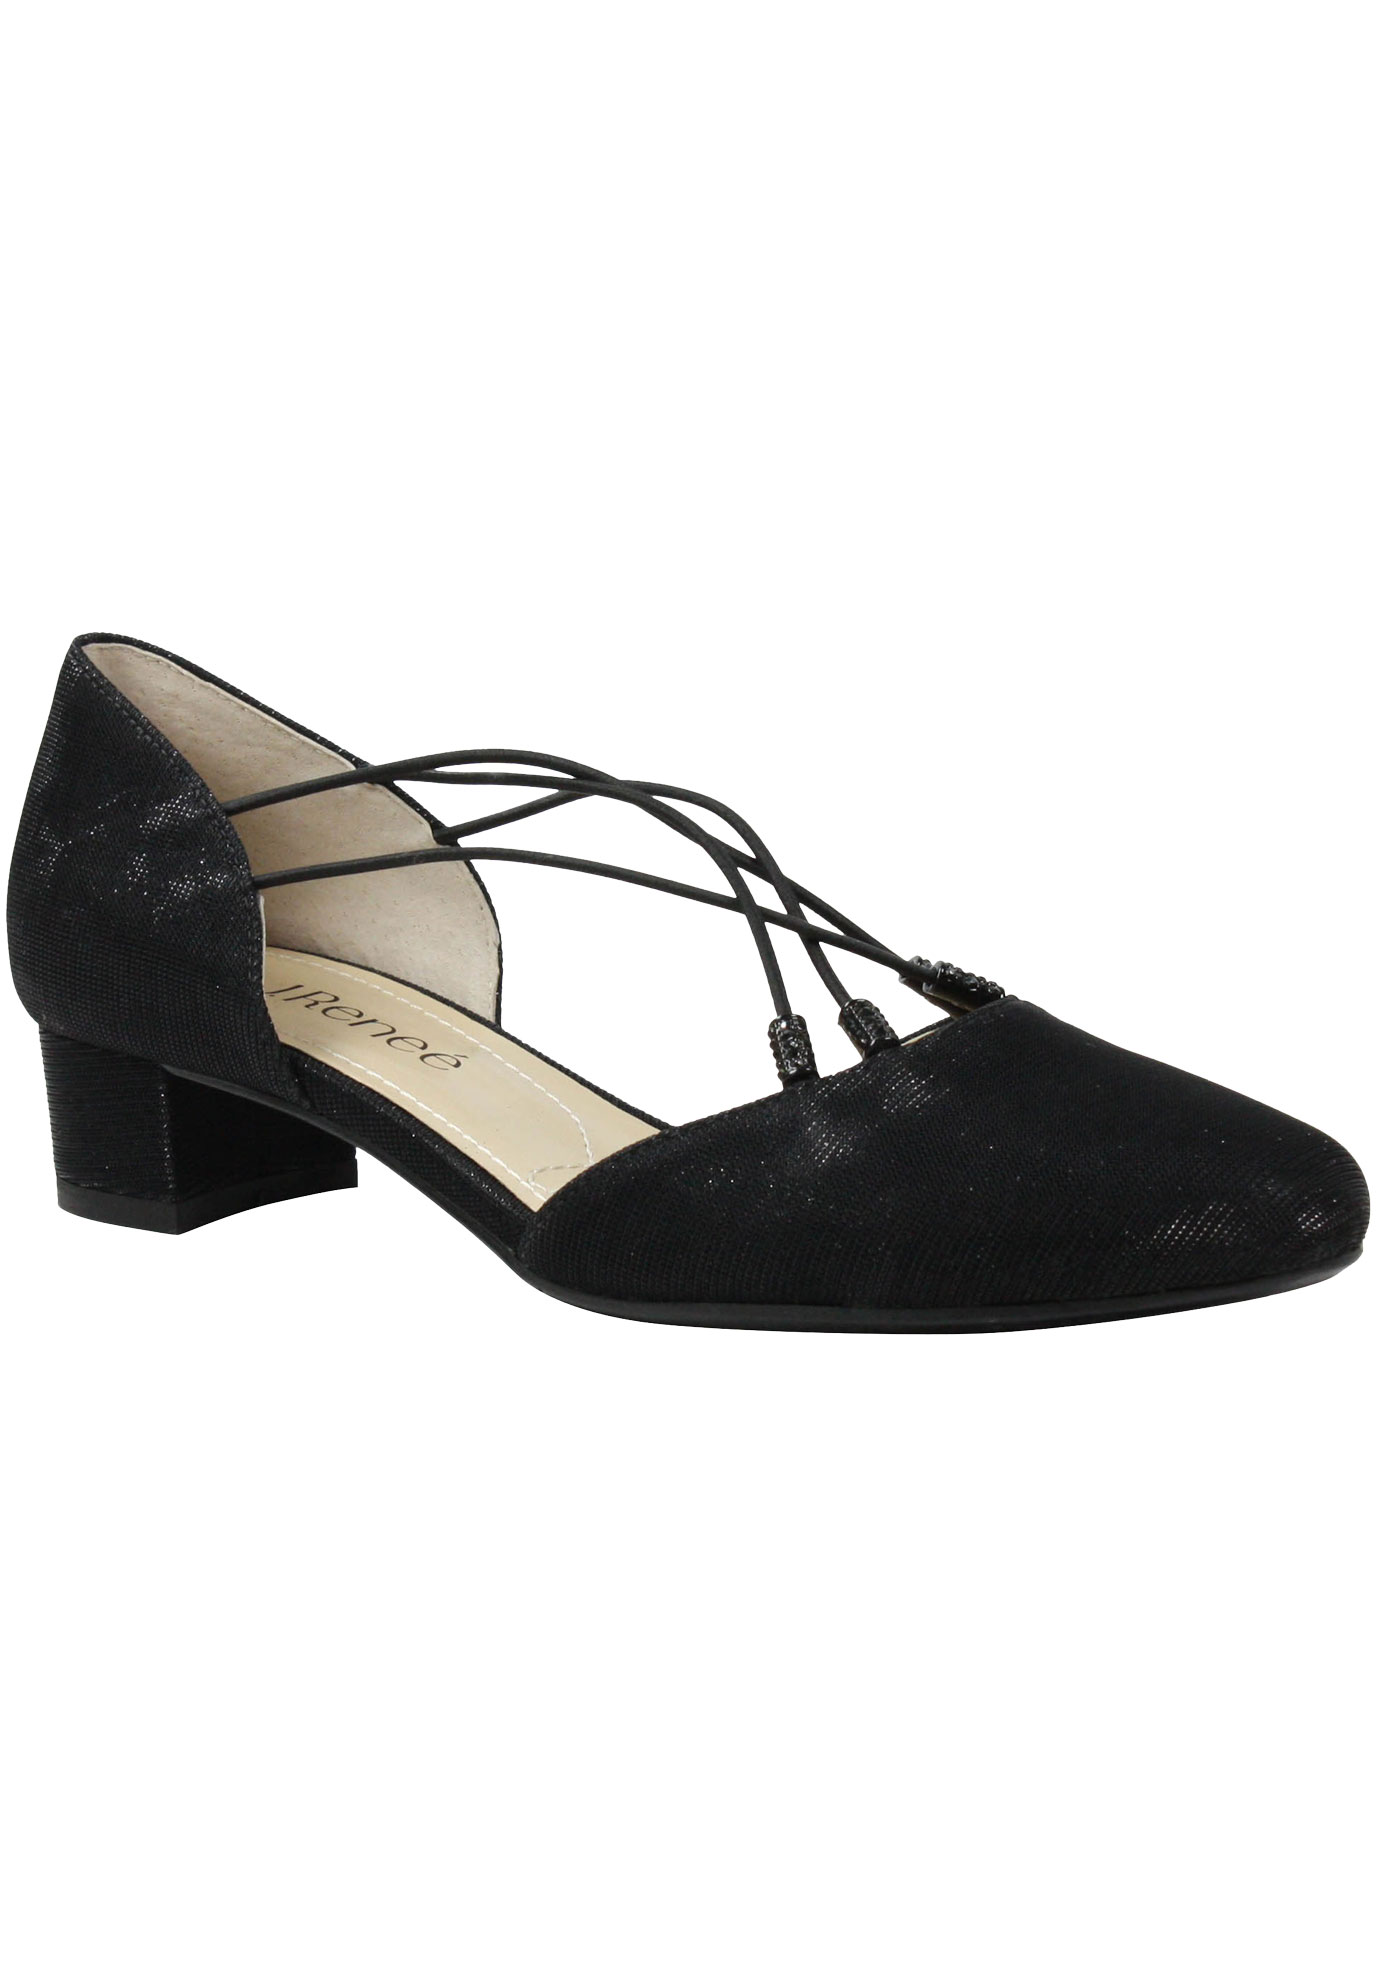 Charolette Pumps by J.Renee®, BLACK, hi-res